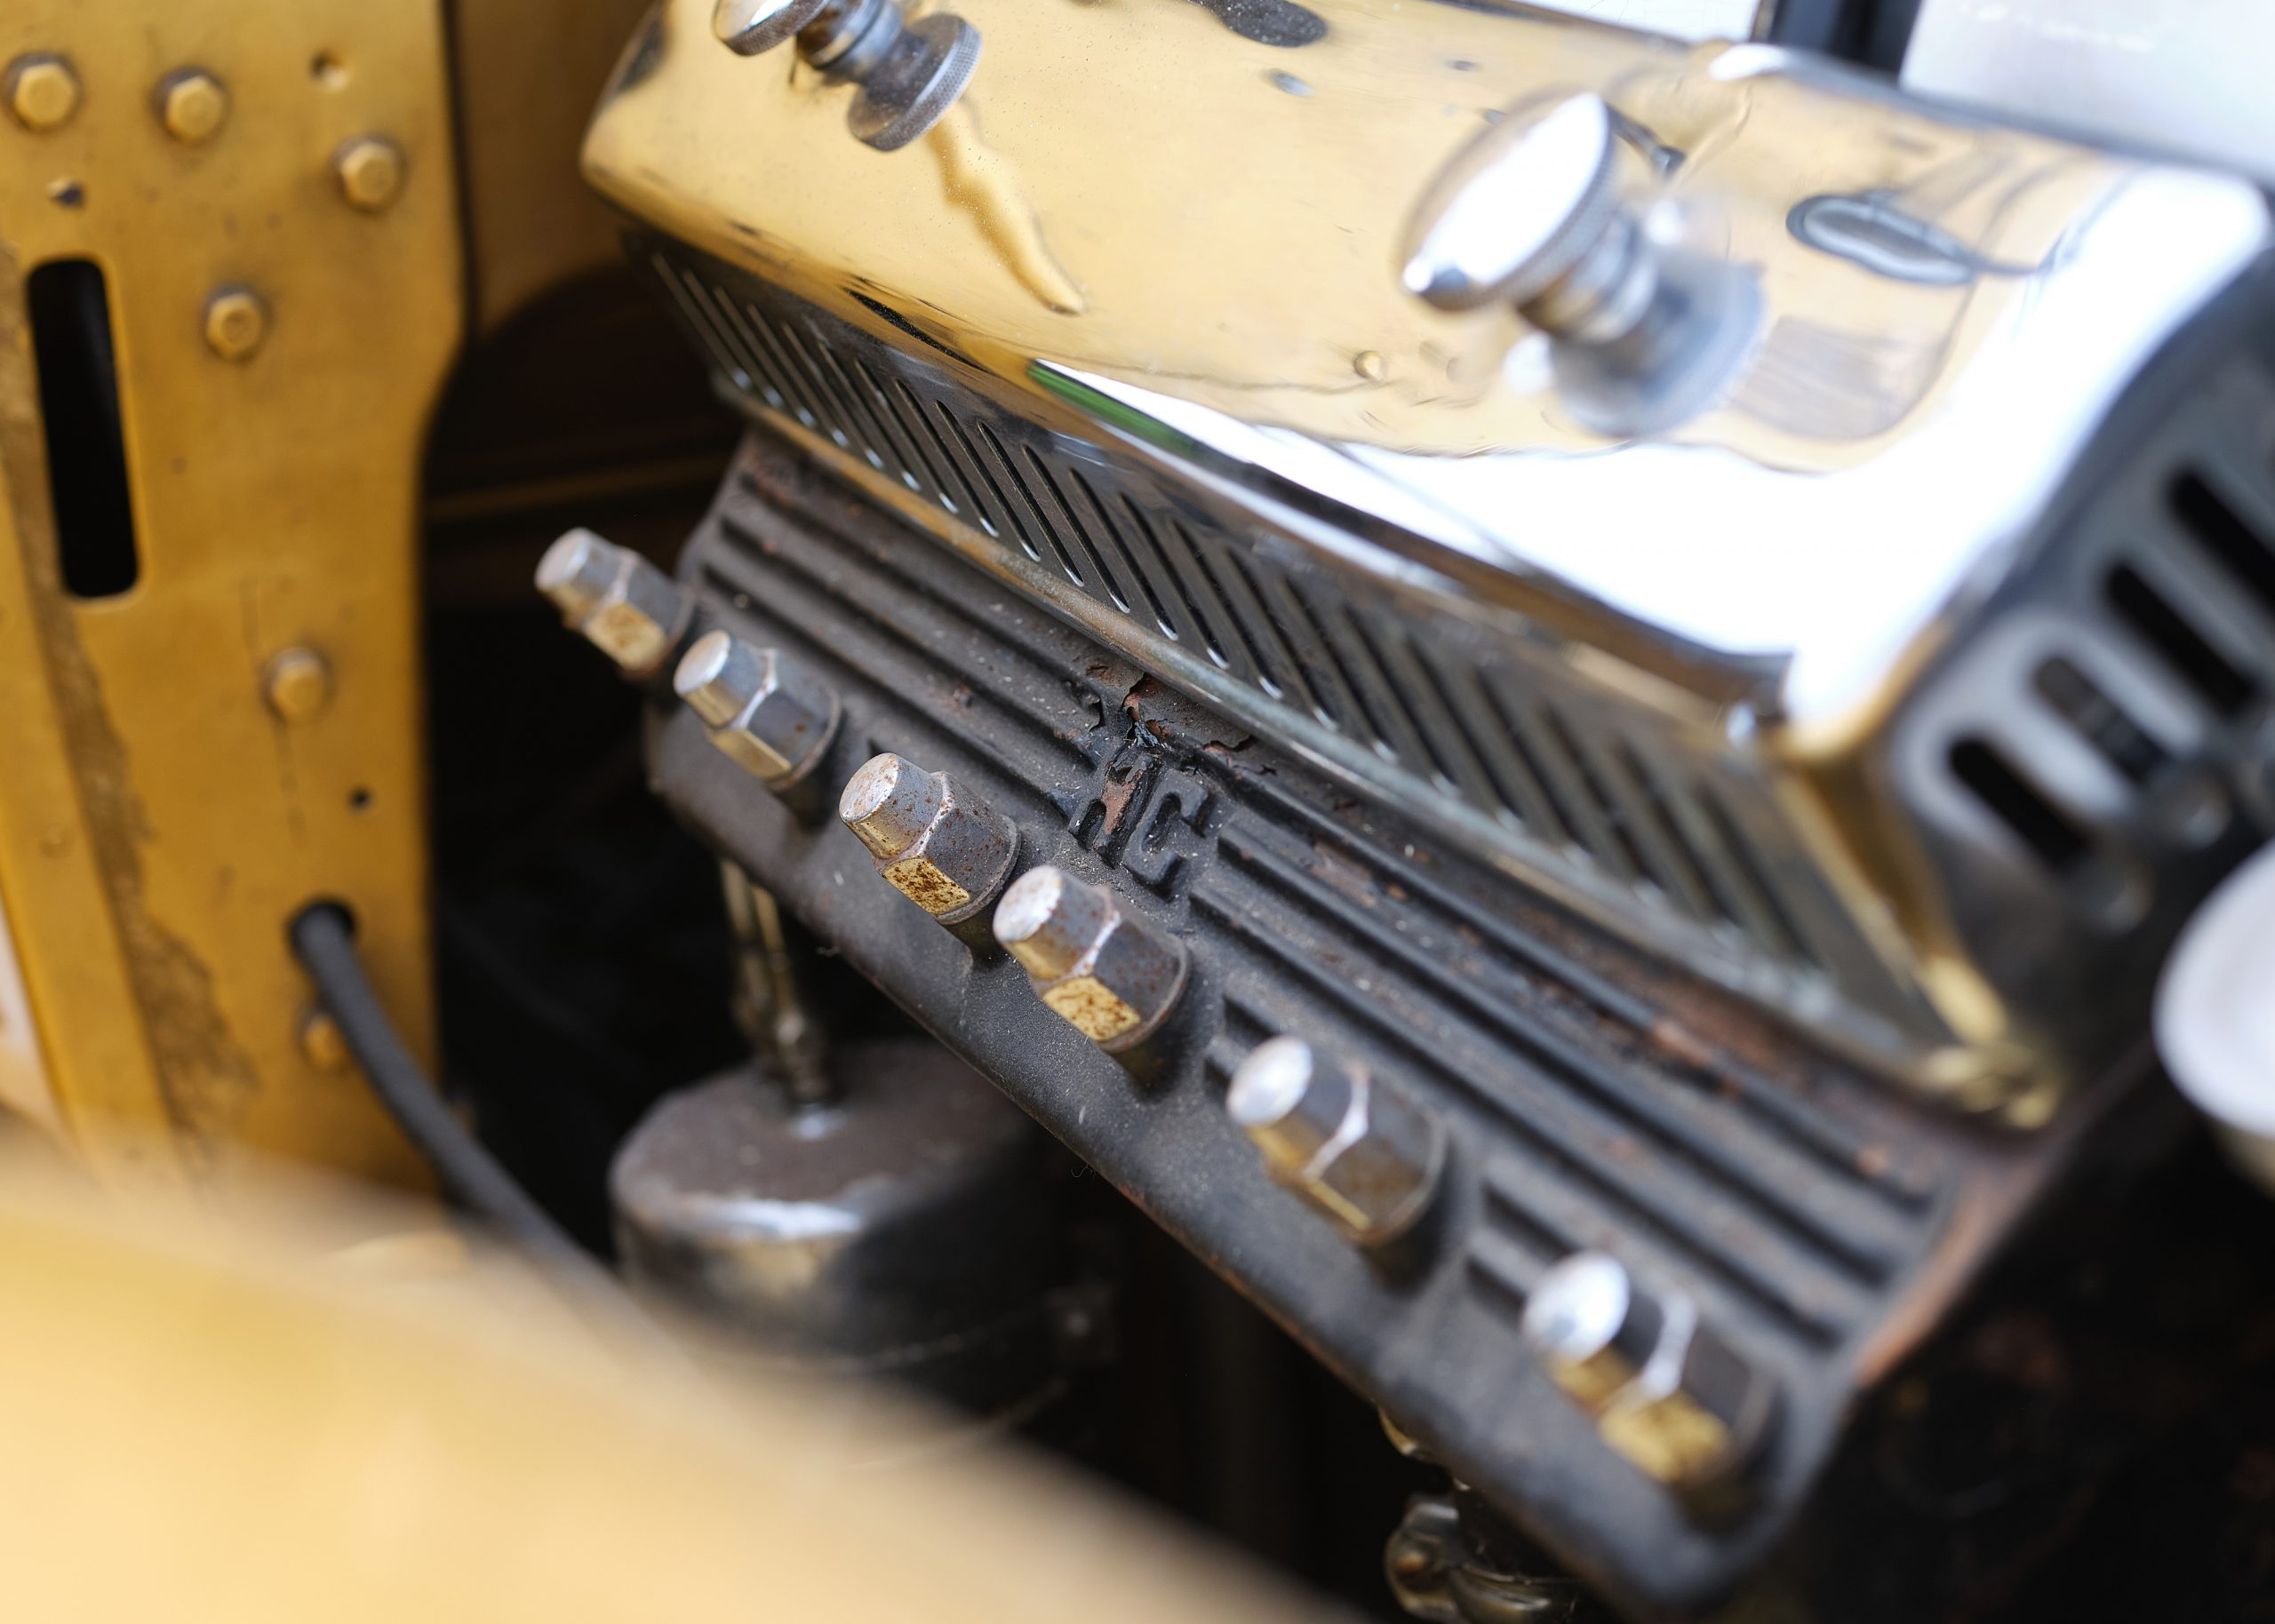 1931 Cadillac V-8 Convertible Coupe engine detail close